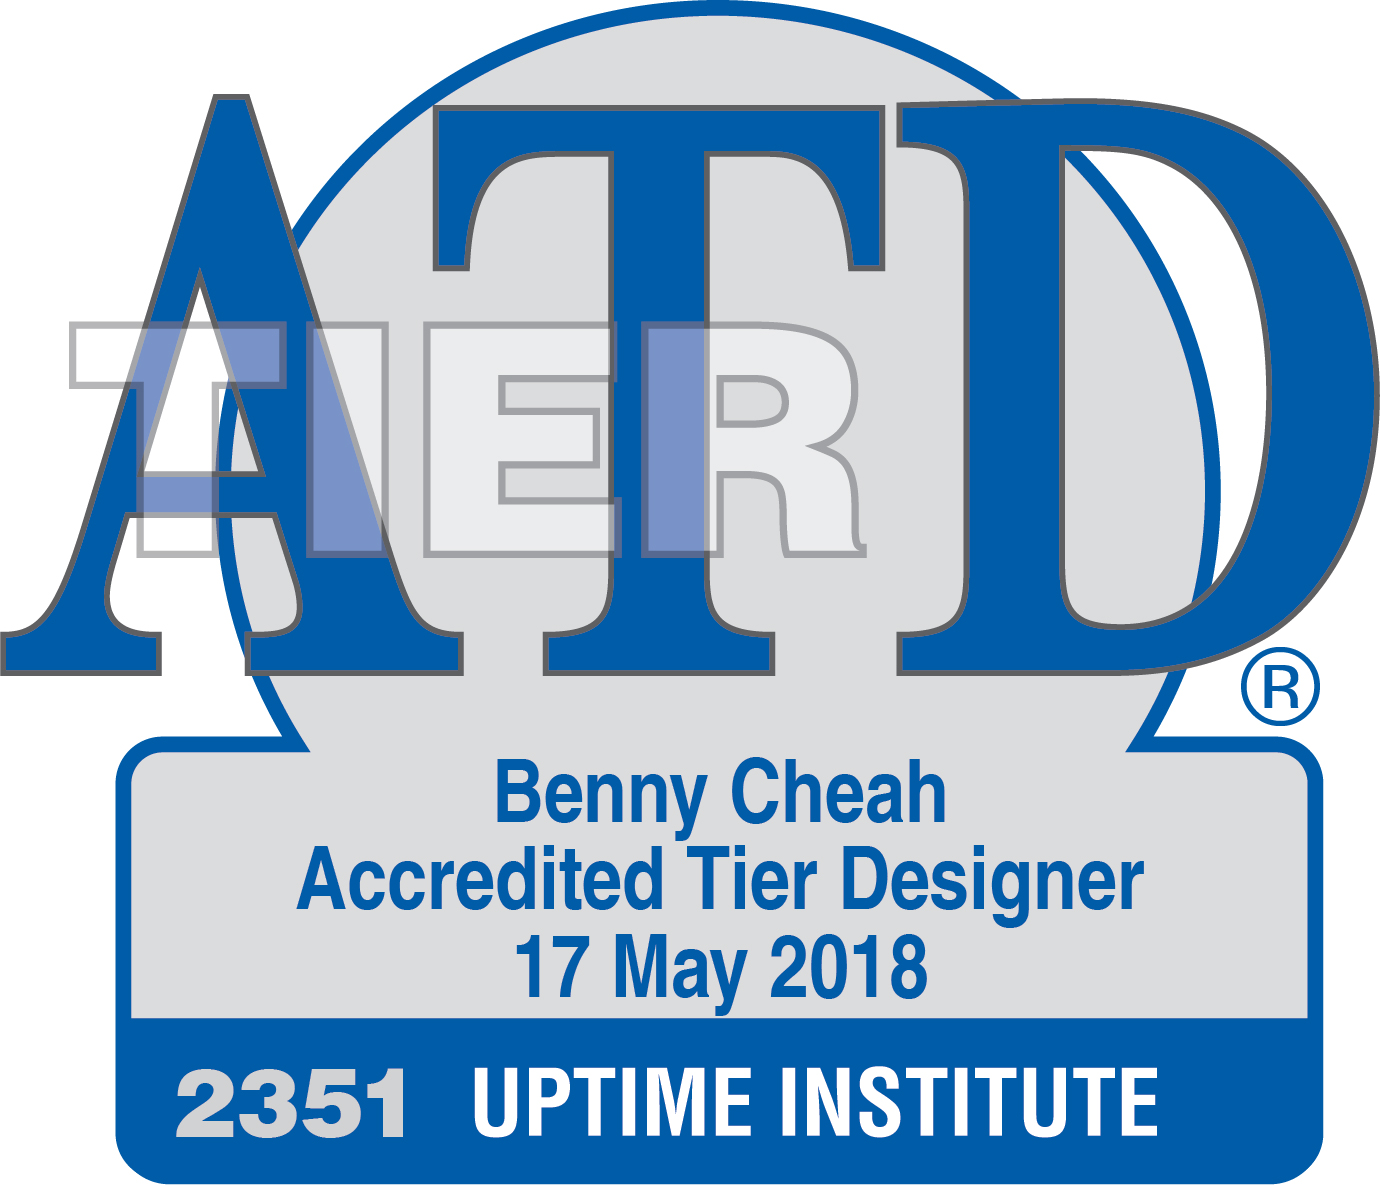 Accredited Tier Designer Roster Uptime Institute Llc Electrical Engineering 4 Year Plan Uc Davis Senior Engineer Aurecon Melbourne Victoria Australia Bennycheahaurecongroupcom